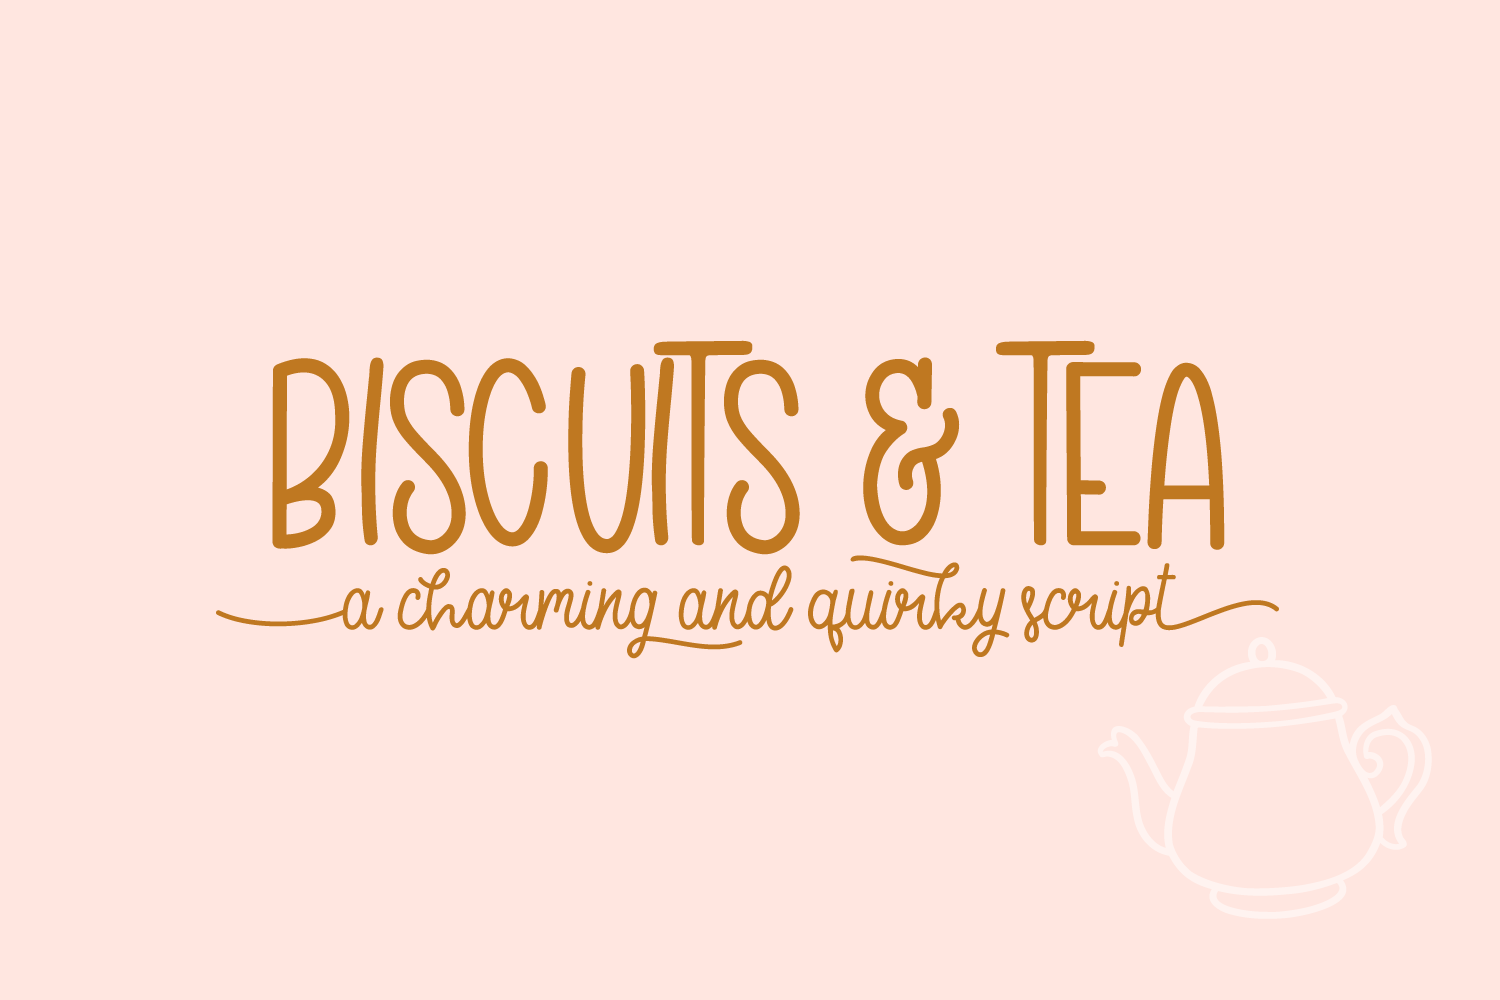 Biscuits and Tea thumbnail